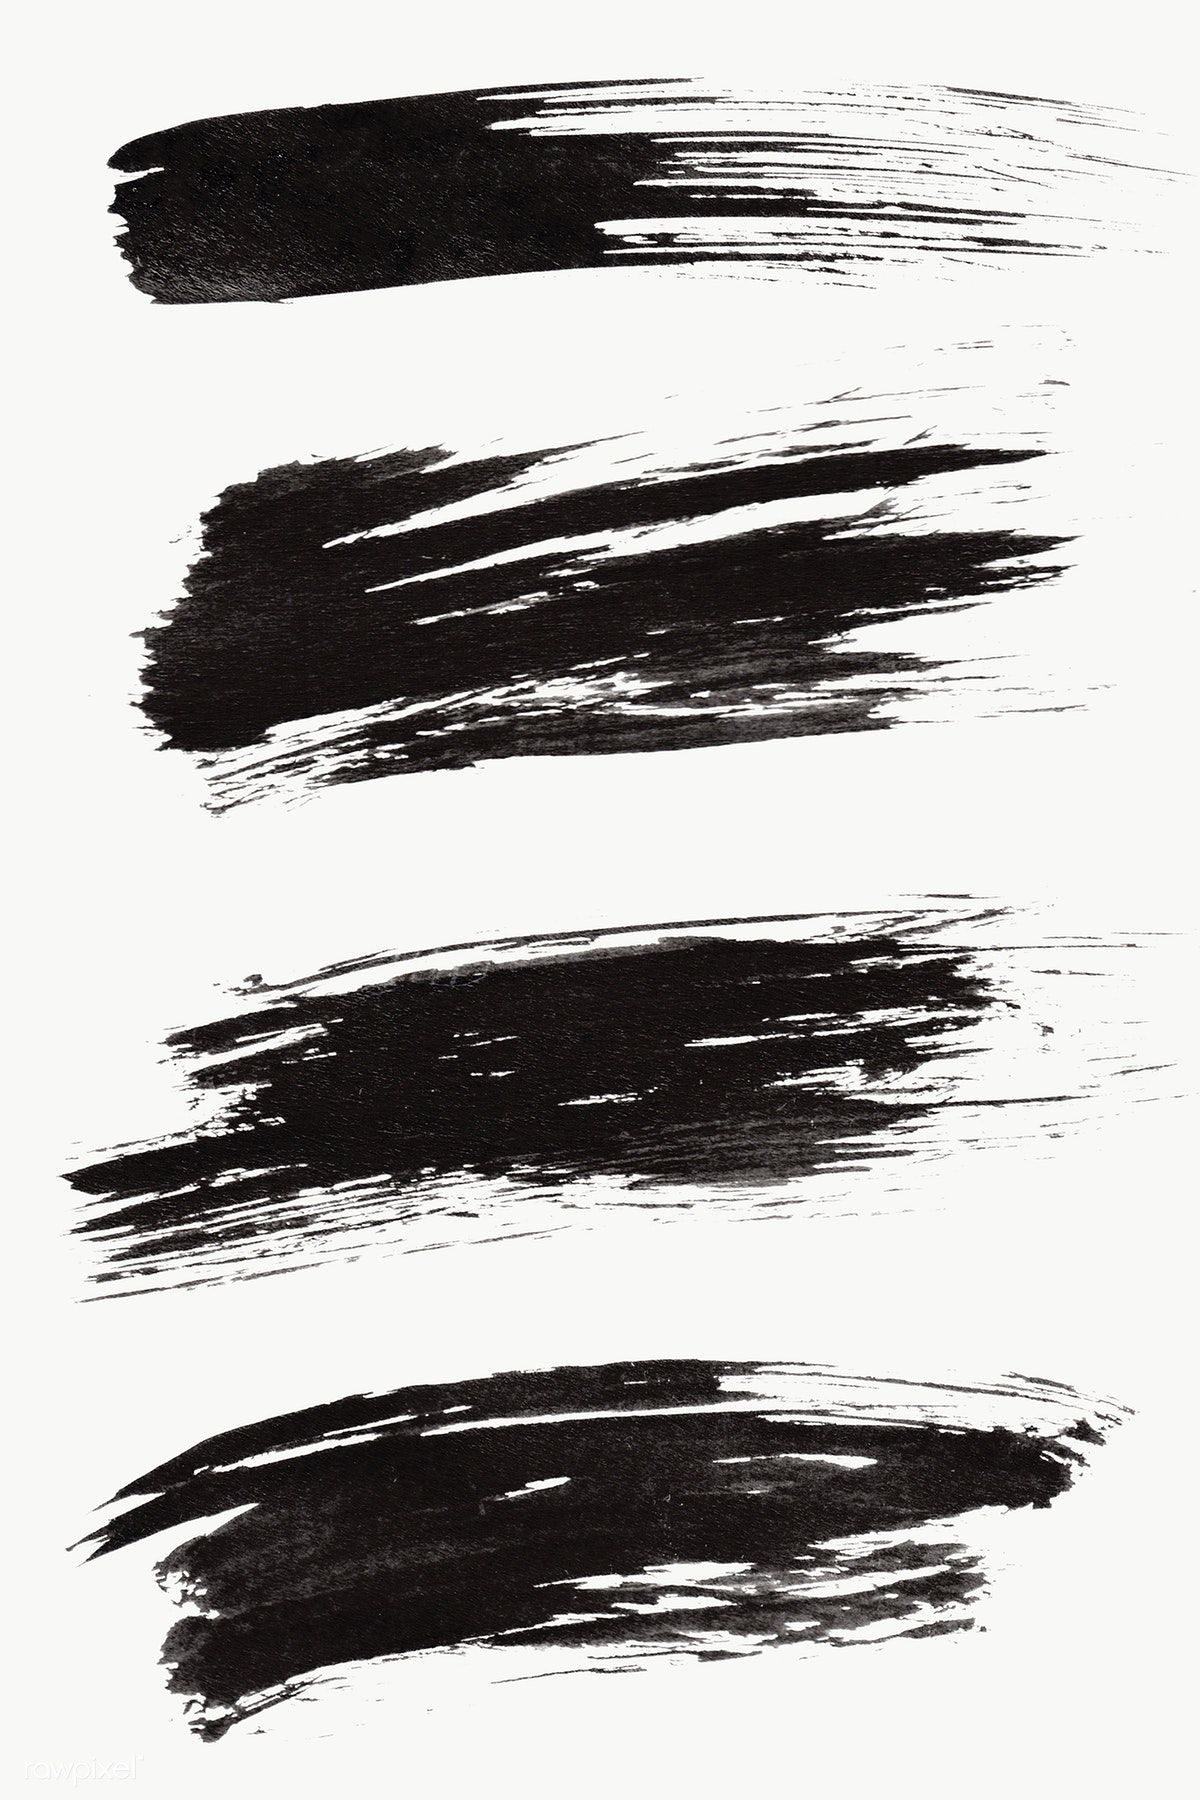 Abstract Black Brush Stroke Set Transparent Png Free Image By Rawpixel Com Nunny Brush Stroke Tattoo Brush Stroke Png Brush Stroke Art